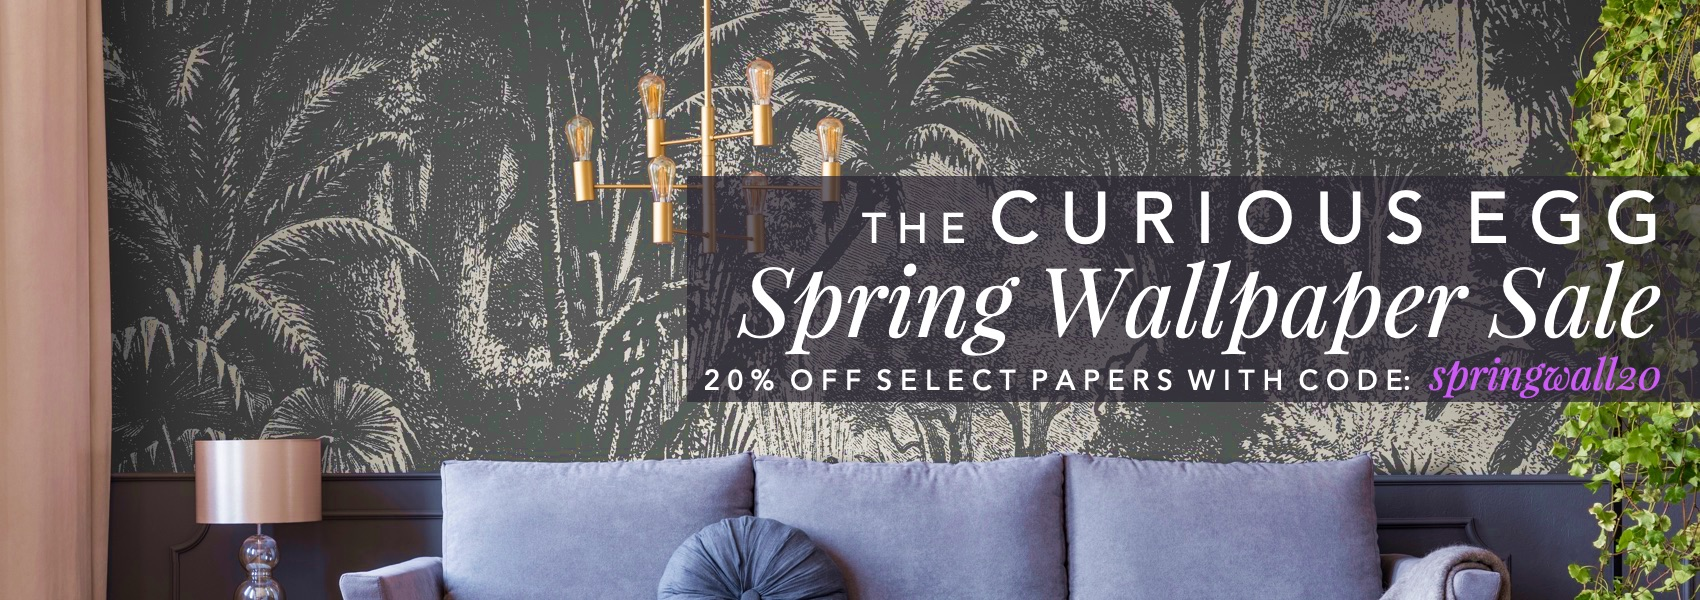 The Curious Egg Spring Wallpaper Sale. Save 20% off Selected Wallpapers with code springwall20